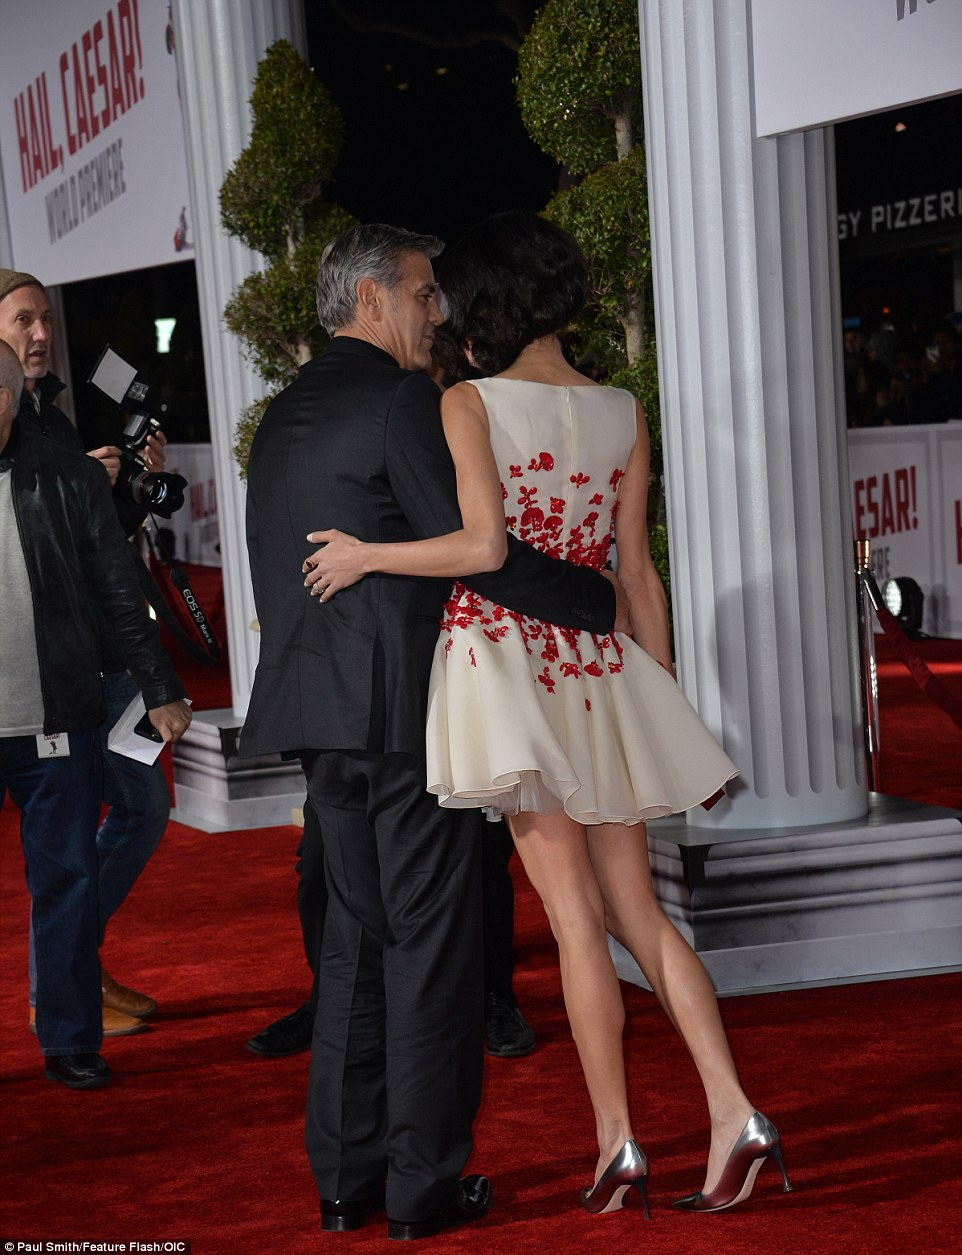 George Clooney and Amal Clooney at the Hail Caesar Premiere LA 30CBA8B100000578-3427580-image-a-92_1454386640674